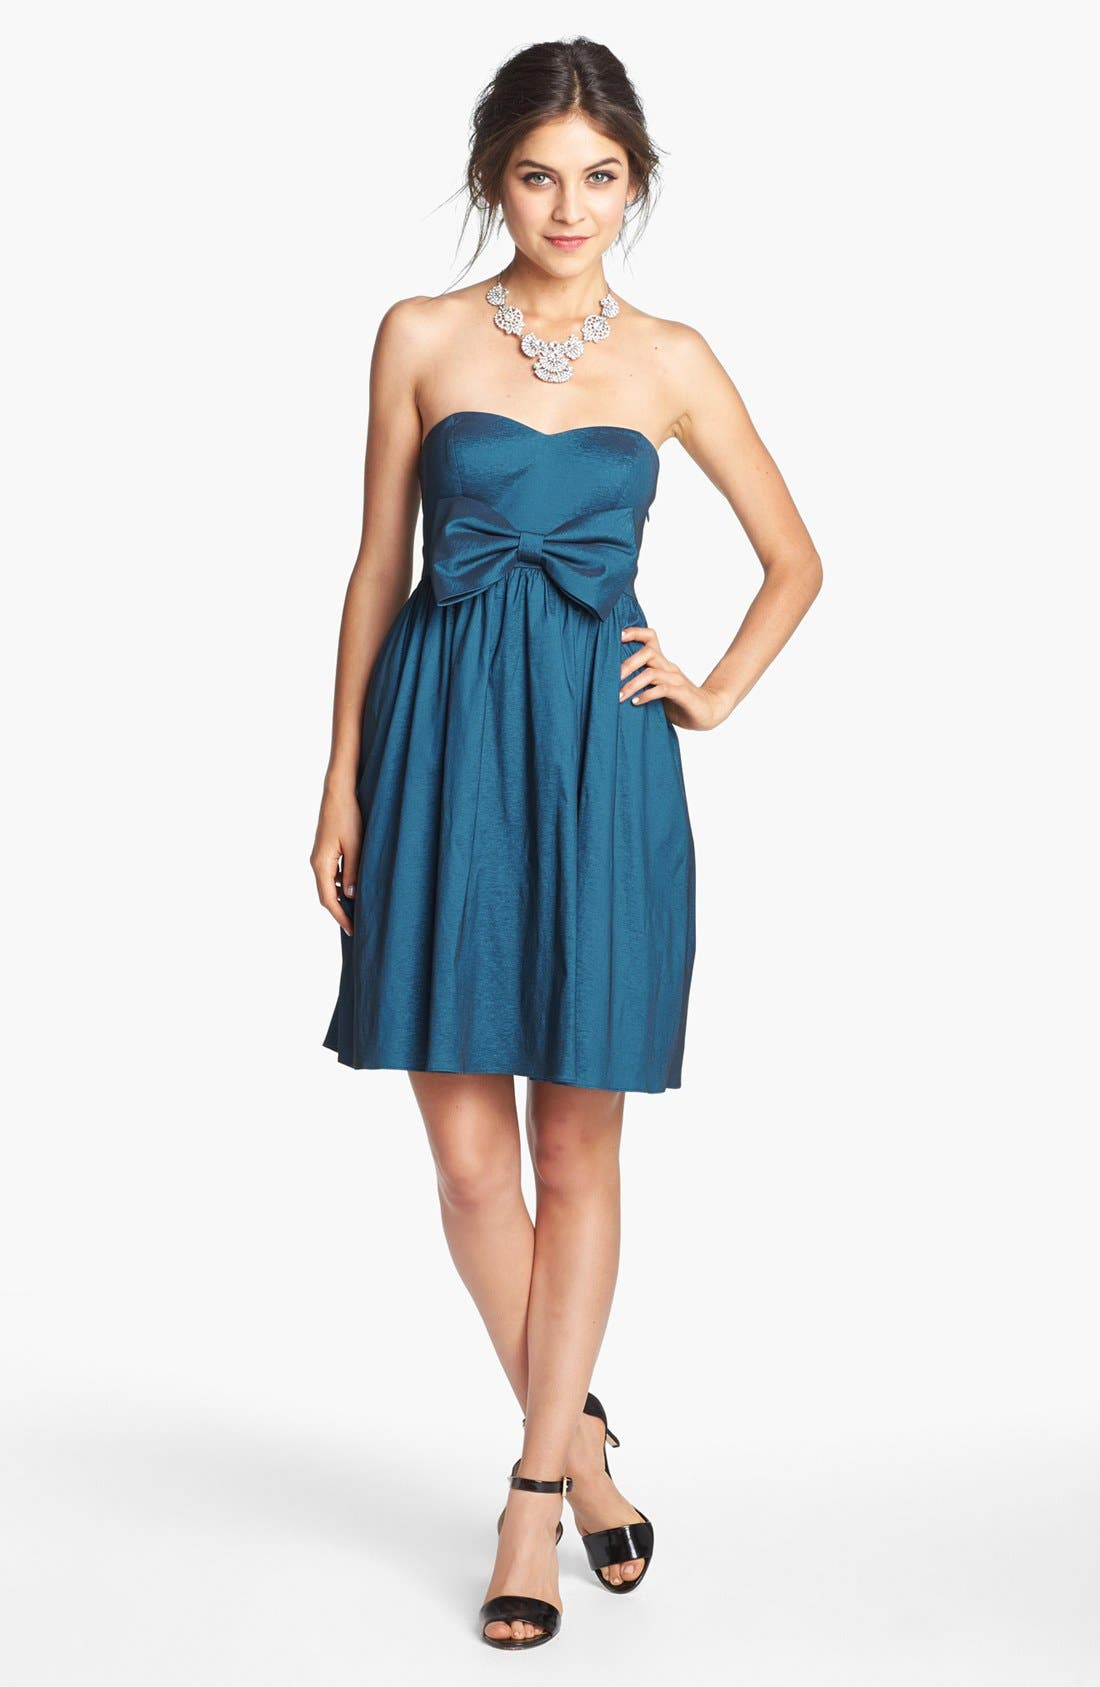 HAILEY BY ADRIANNA PAPELL Bow Detail Taffeta Fit & Flare Dress, Main, color, 403